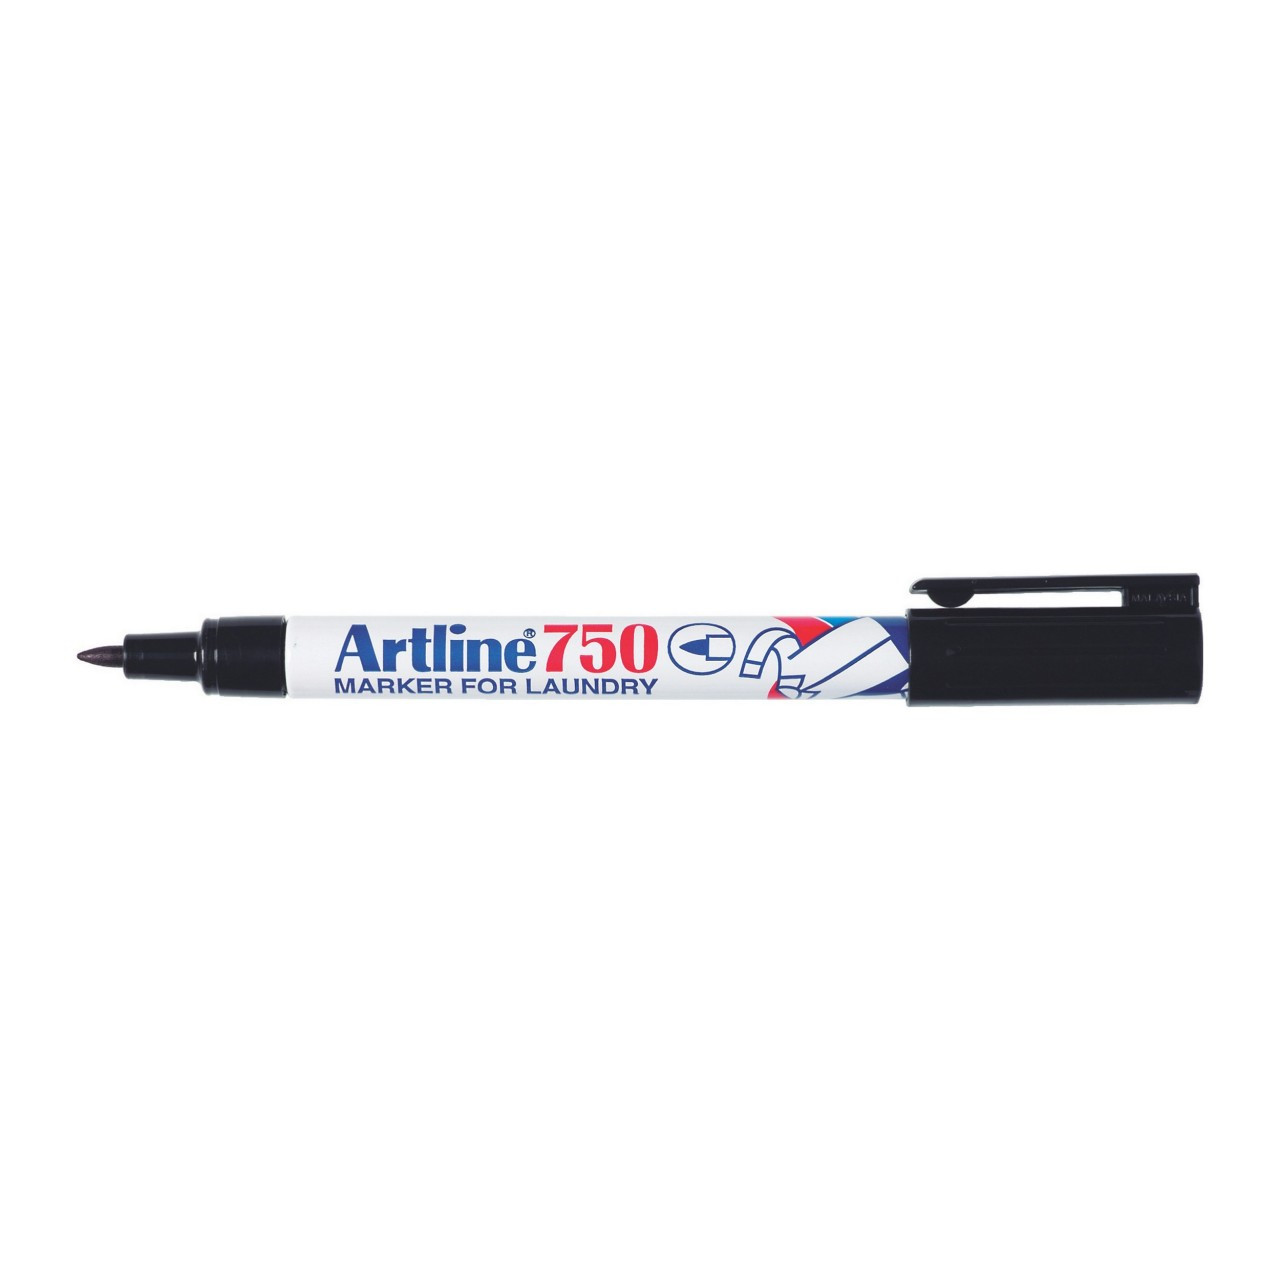 Artline 750 Laundry Marker 0.7Mm Bullet Nib Twin Black X 6 Units